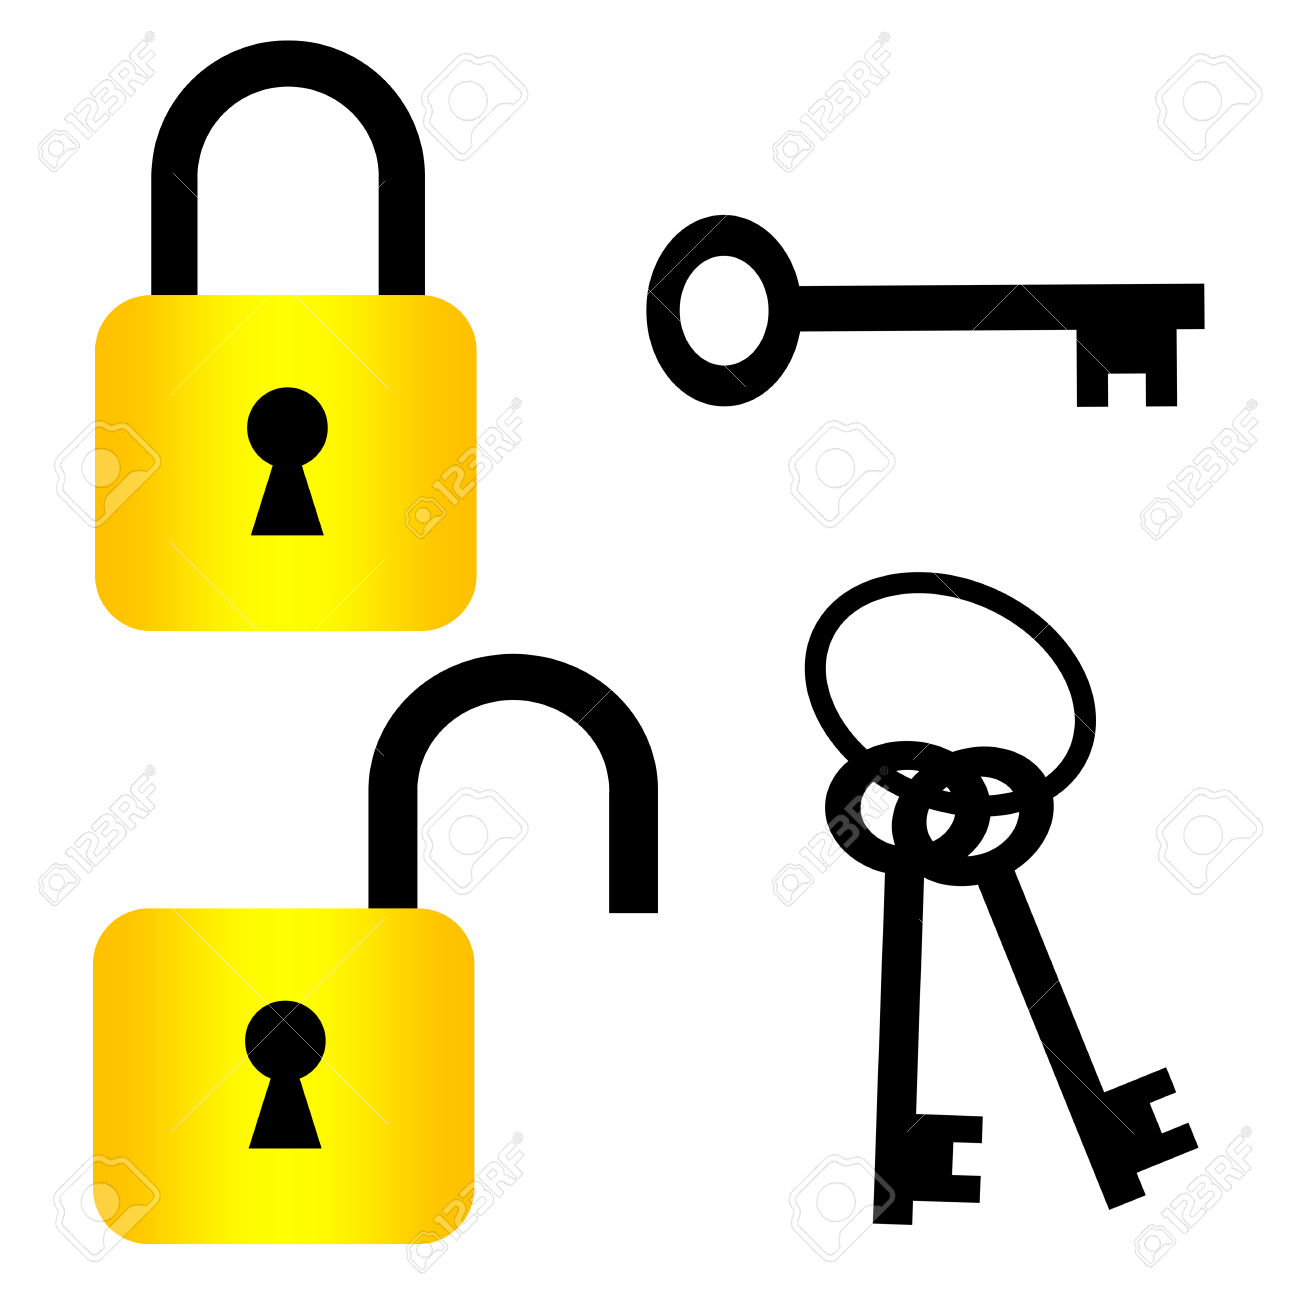 Clipart keys and locks.